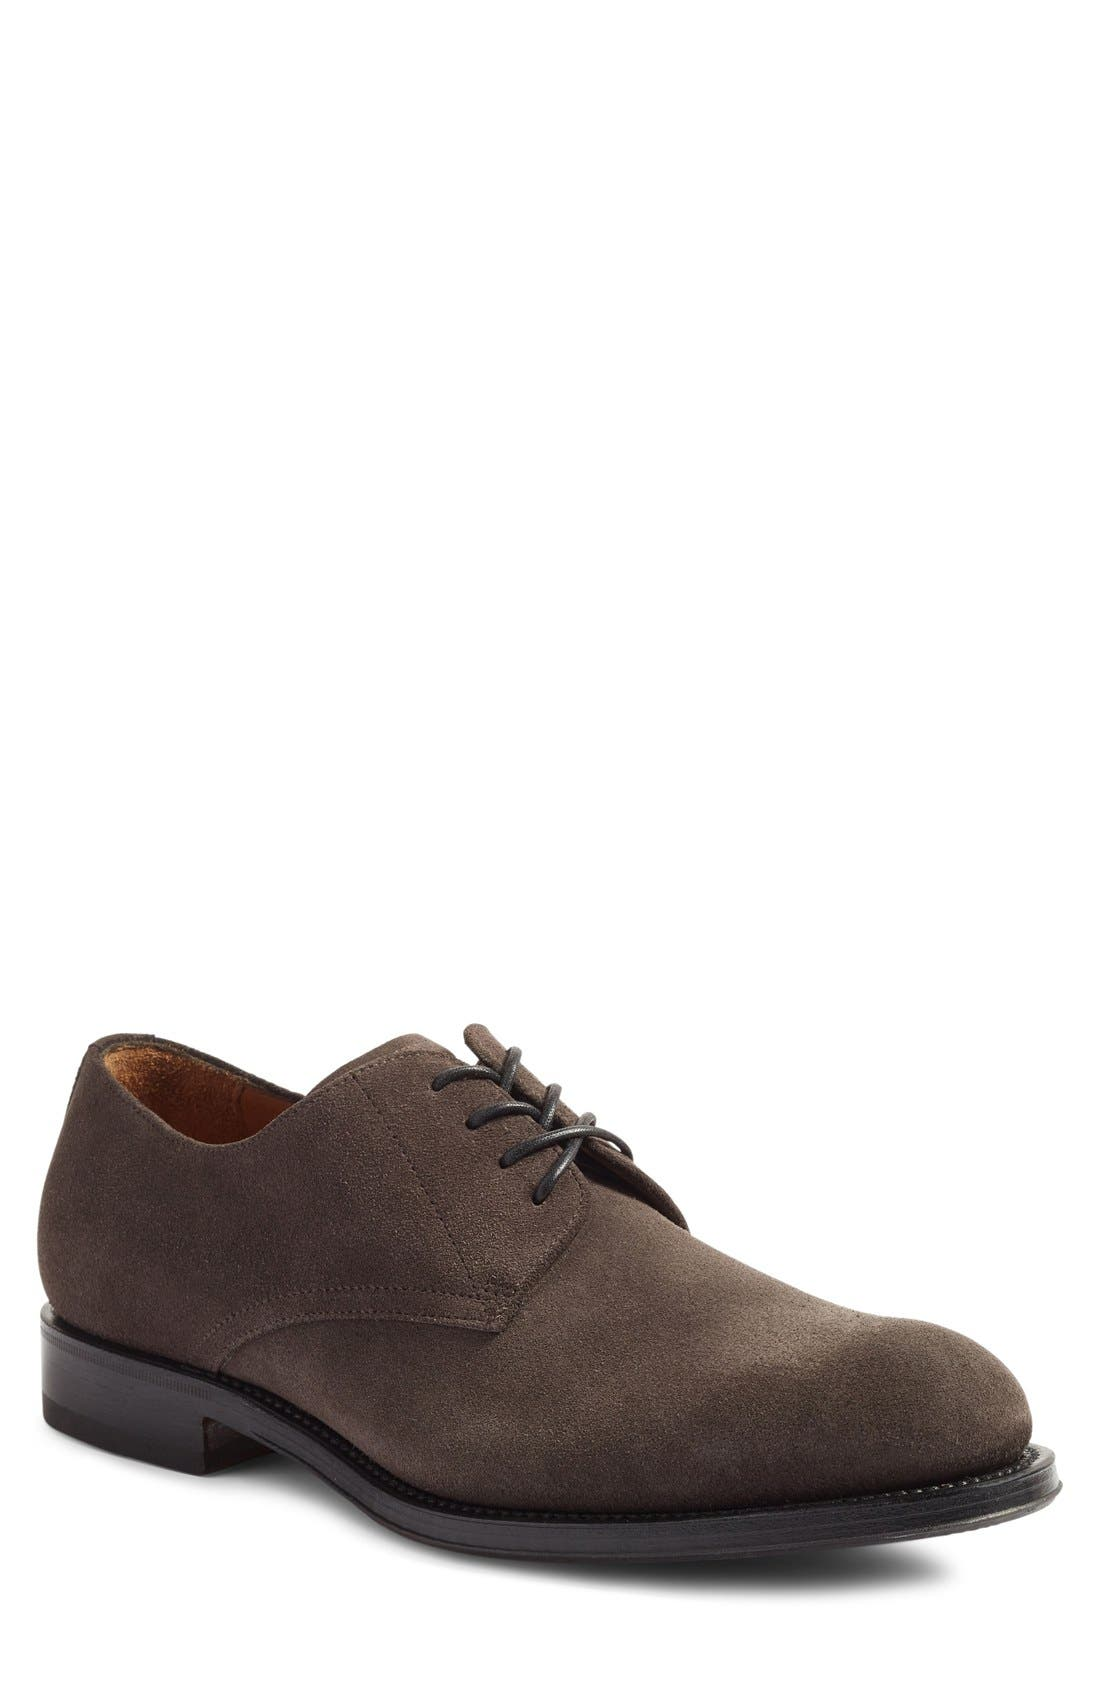 'Vance' Plain Toe Derby,                             Main thumbnail 1, color,                             Charcoal Suede